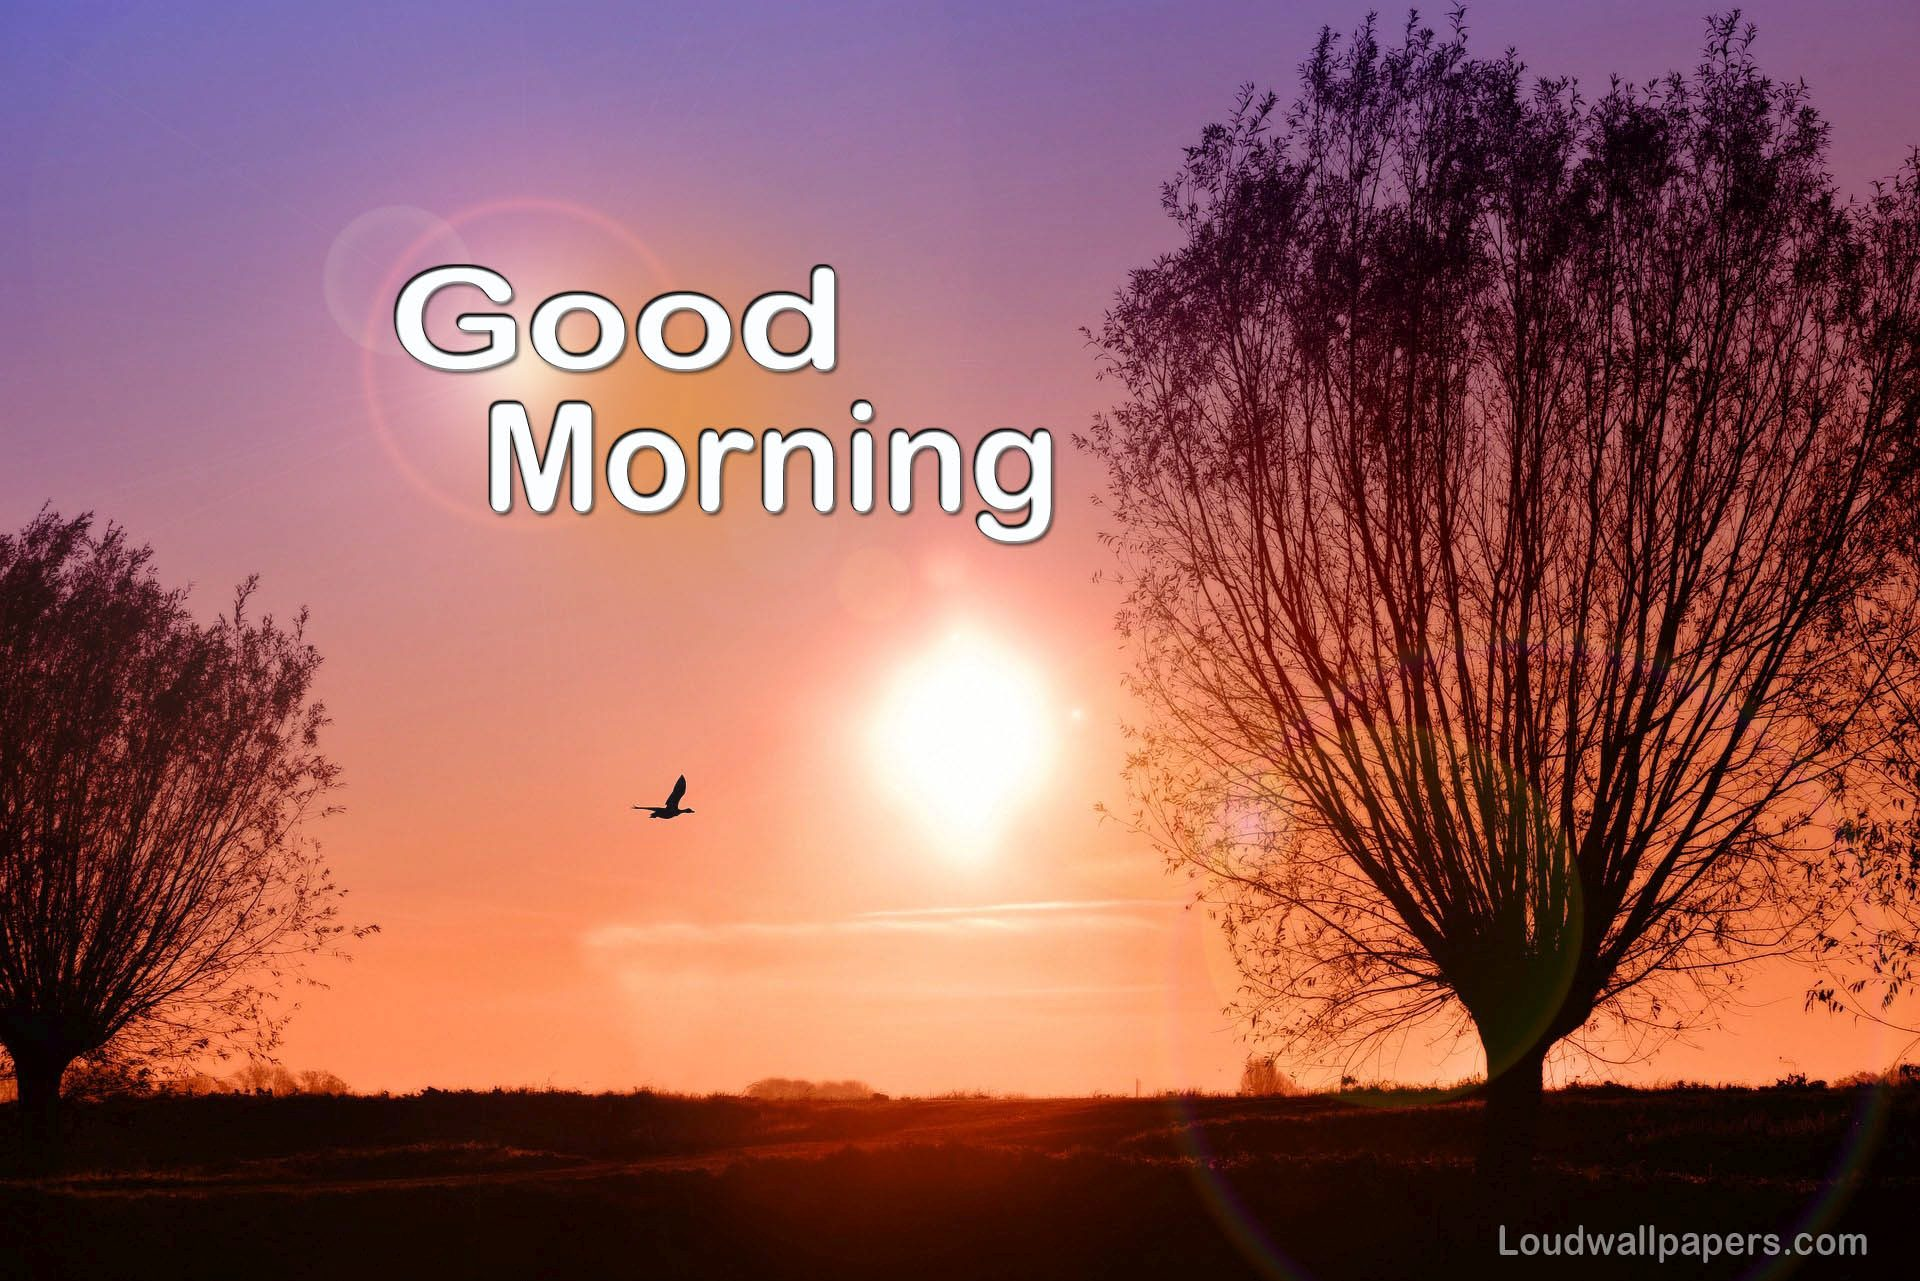 Good Morning Birds Wishes Wallpapers and Quotes 1920x1281